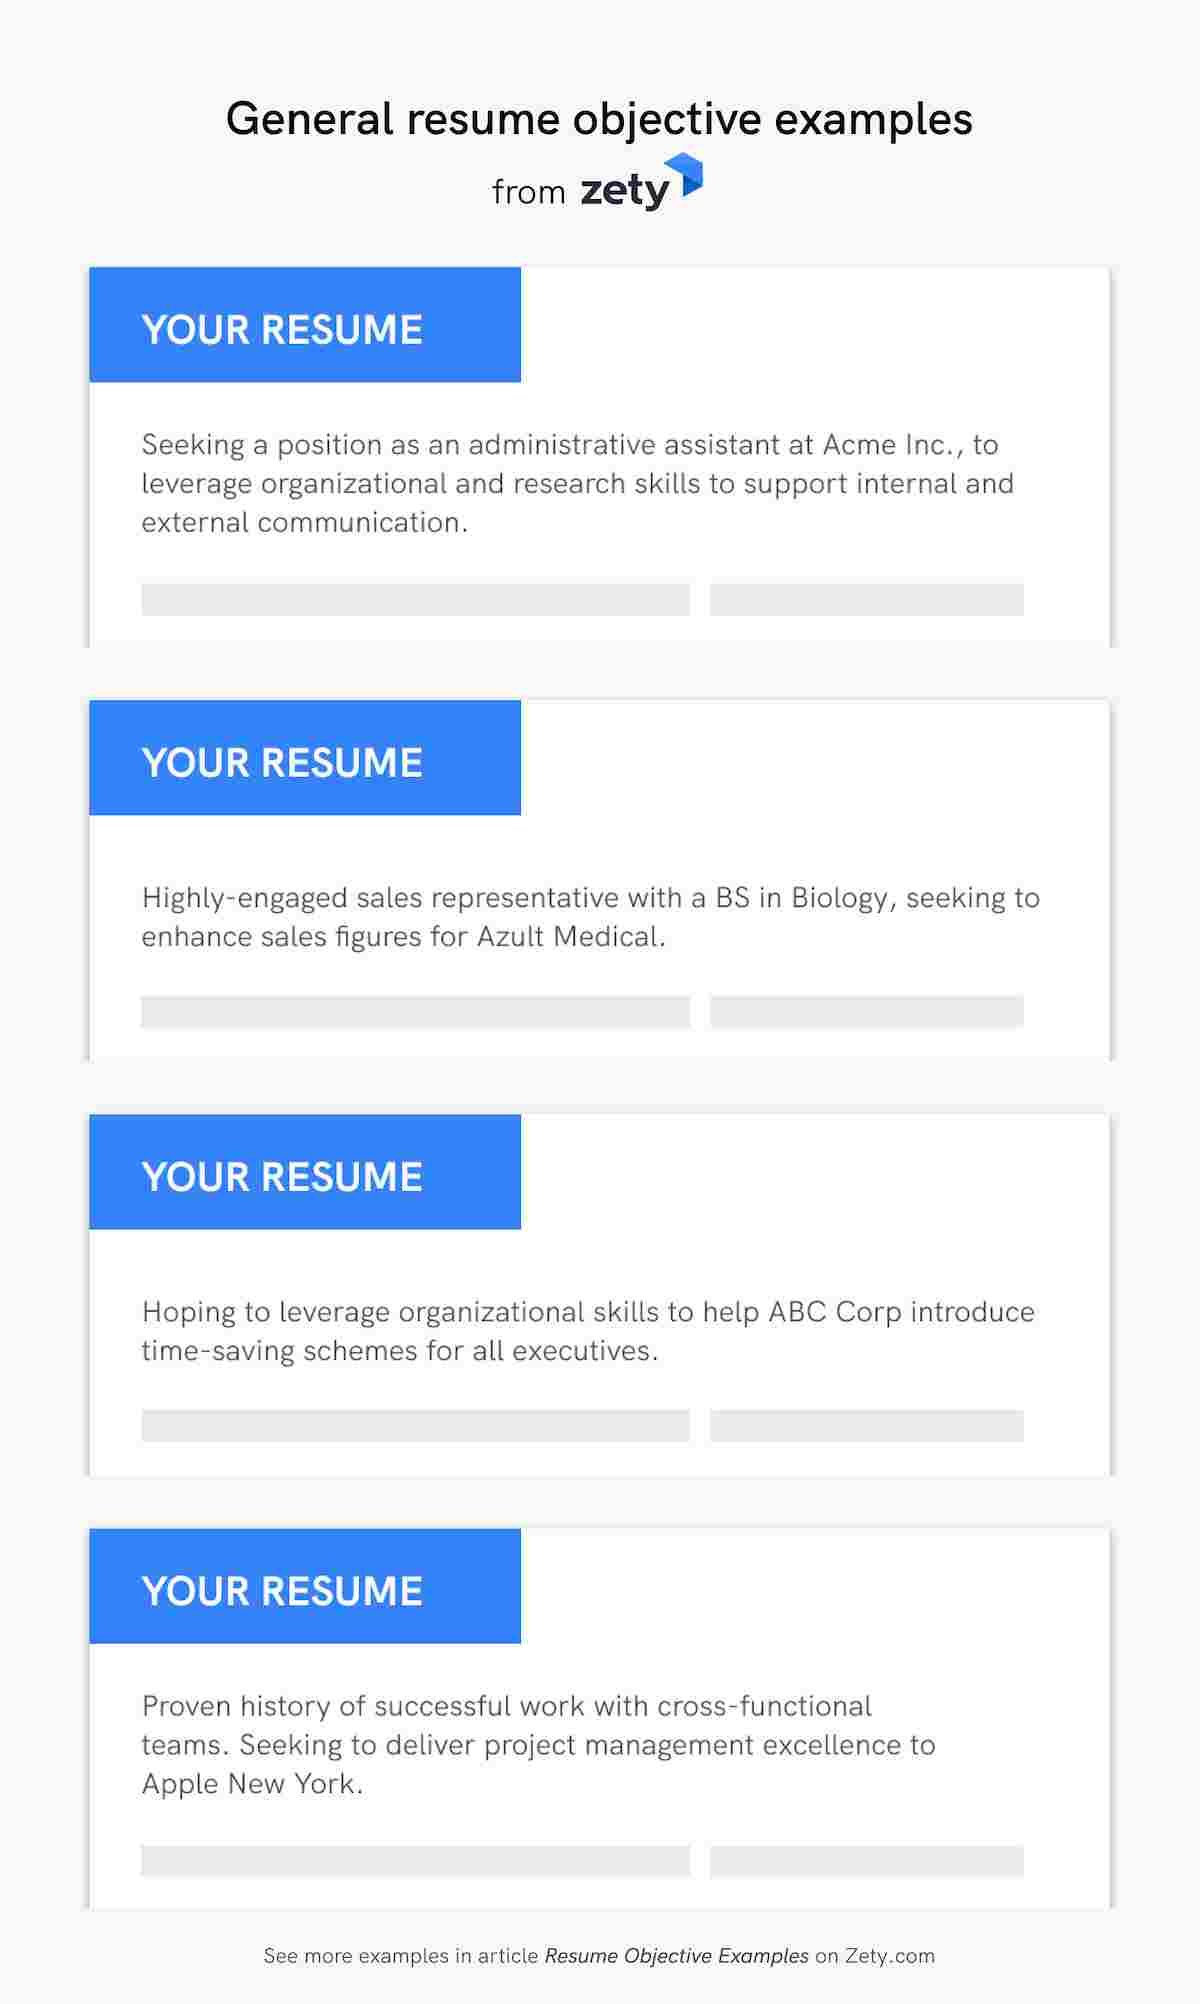 resume objective examples career objectives for all jobs catchy statements general Resume Catchy Resume Objective Statements